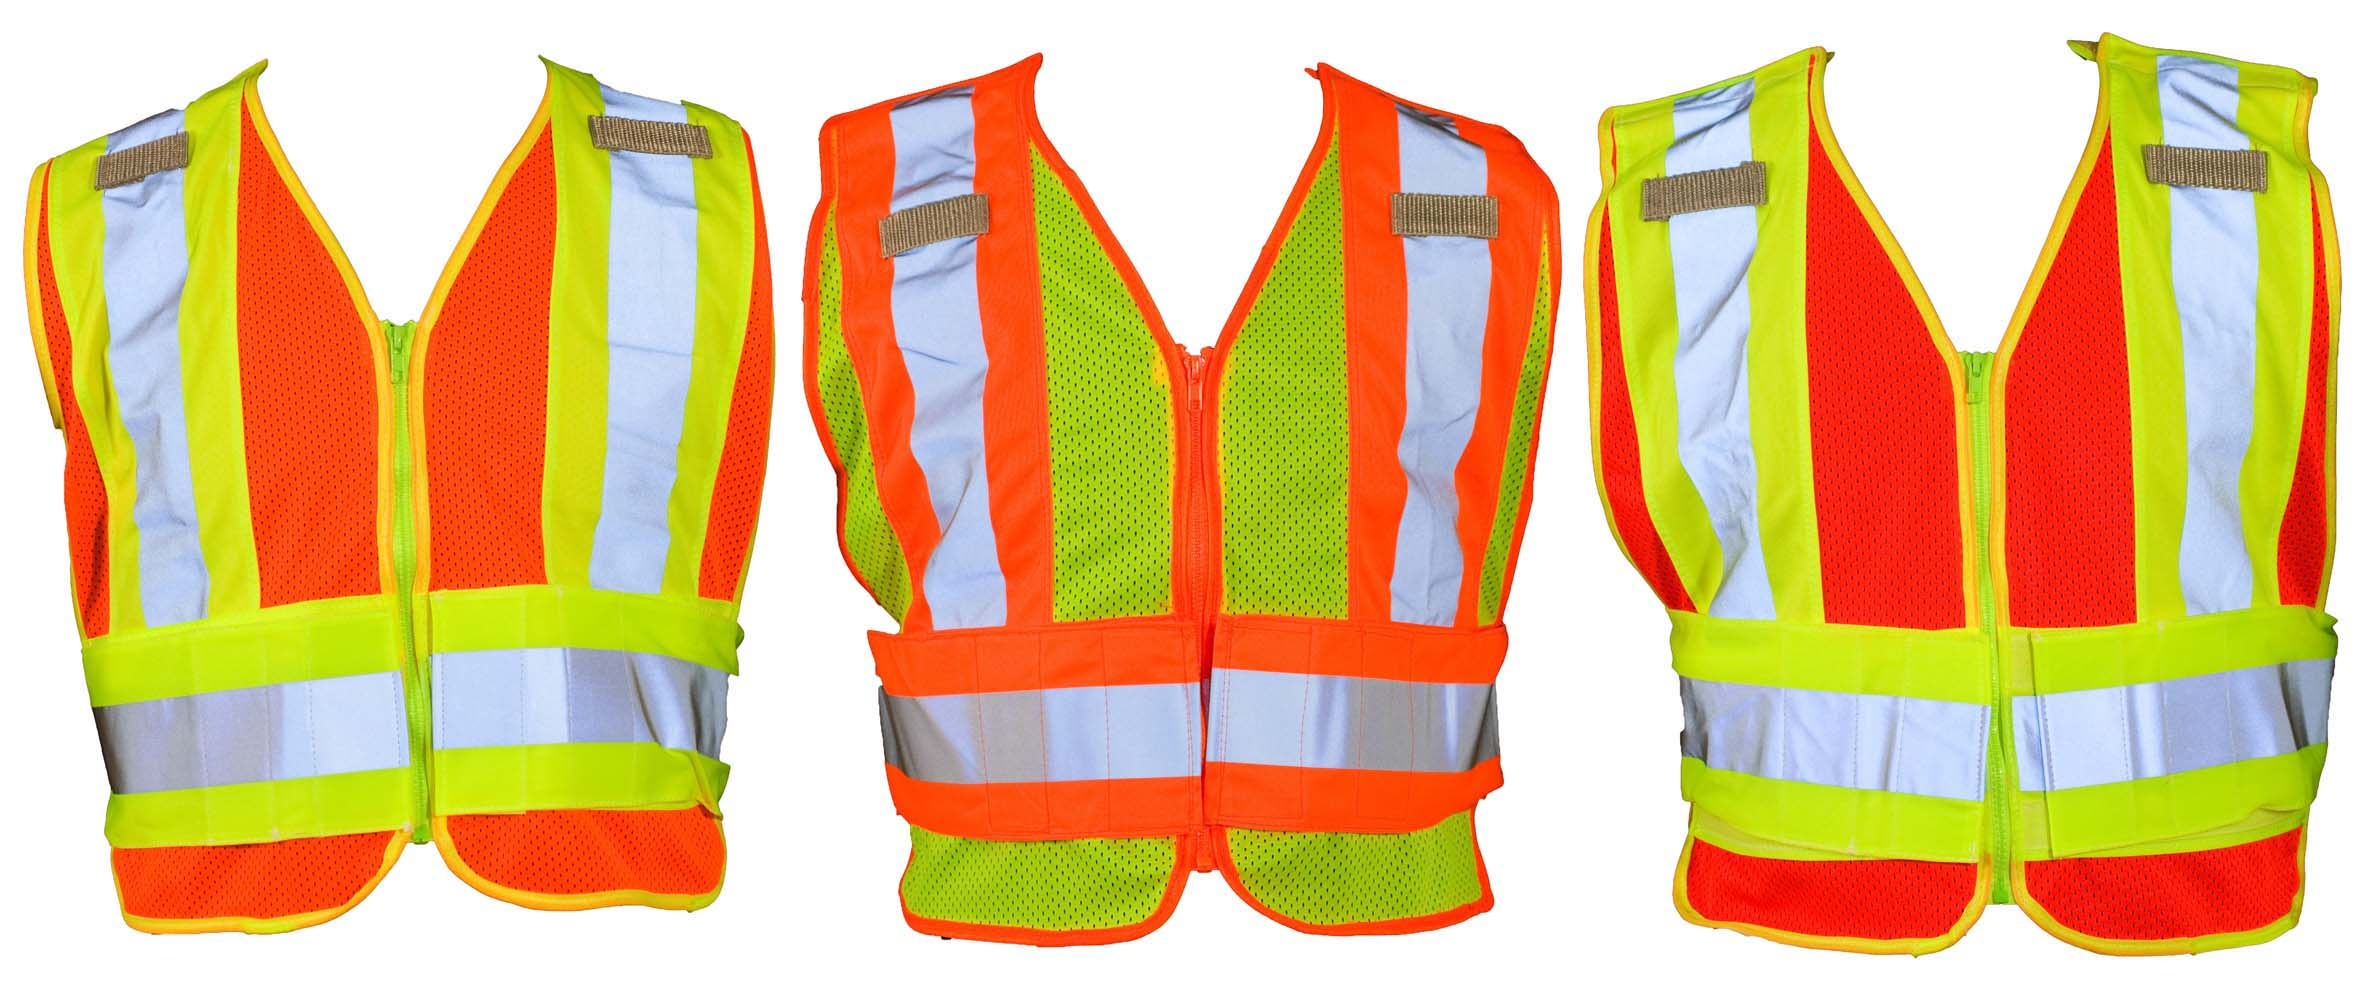 ANSI ISEA 207 2006 Public Safety Vest Lime Orange Red Fabric Mesh Or Solid 3M Scotchlite Contrasting Reflective Stripes Tearaway2 Microphone Tabs